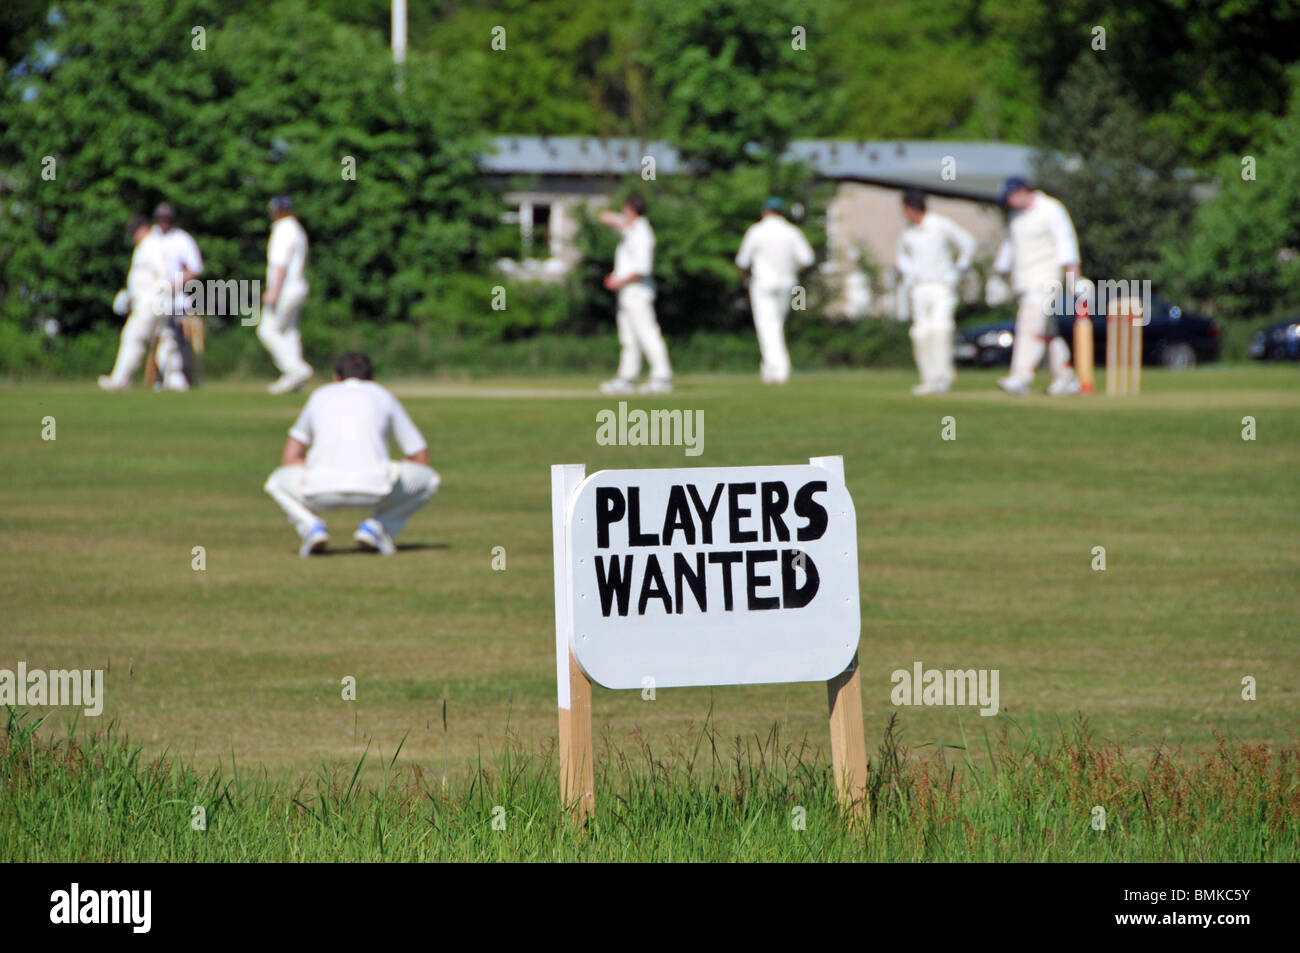 Village green cricket match and sign for players wanted - Stock Image